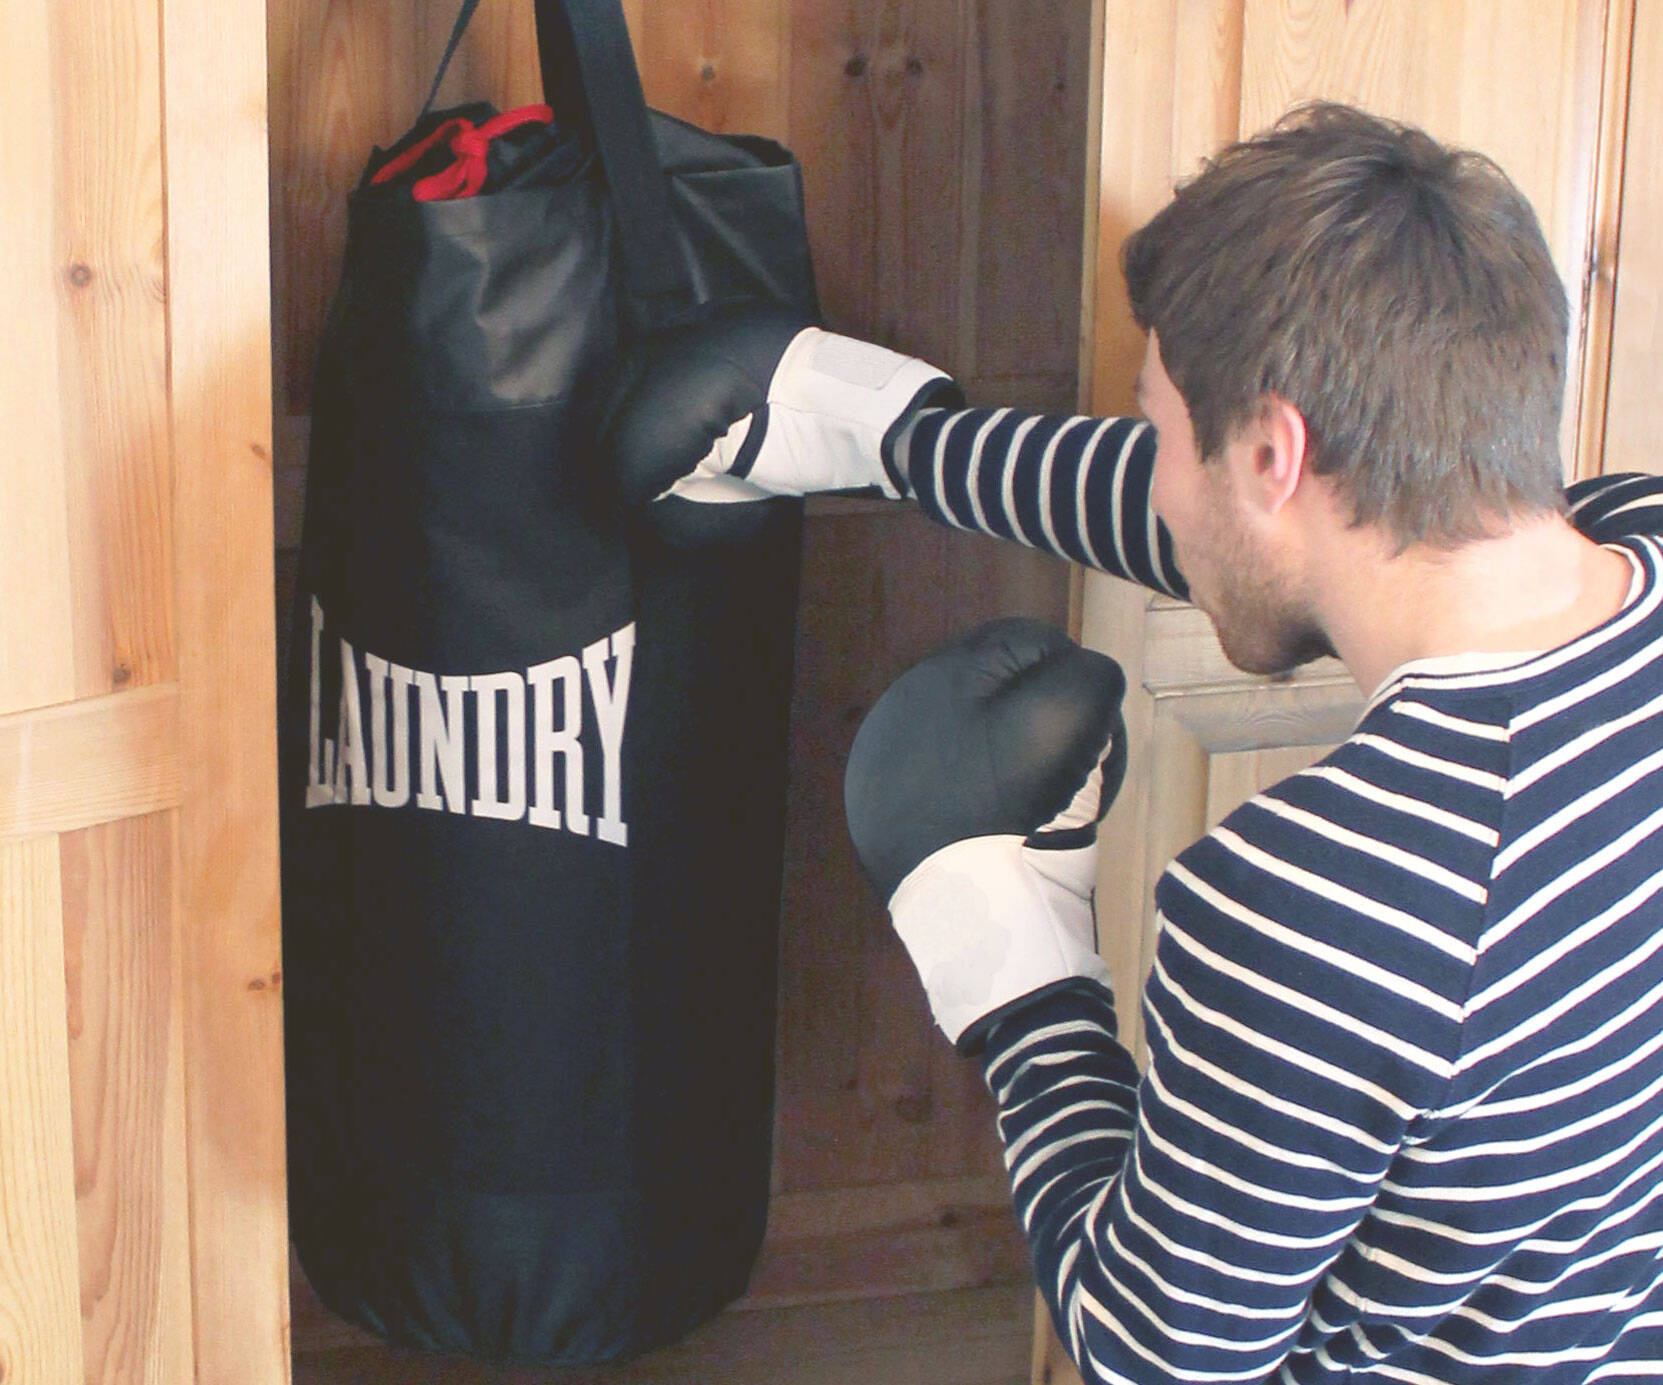 Punching Bag Laundry Bag - http://coolthings.us